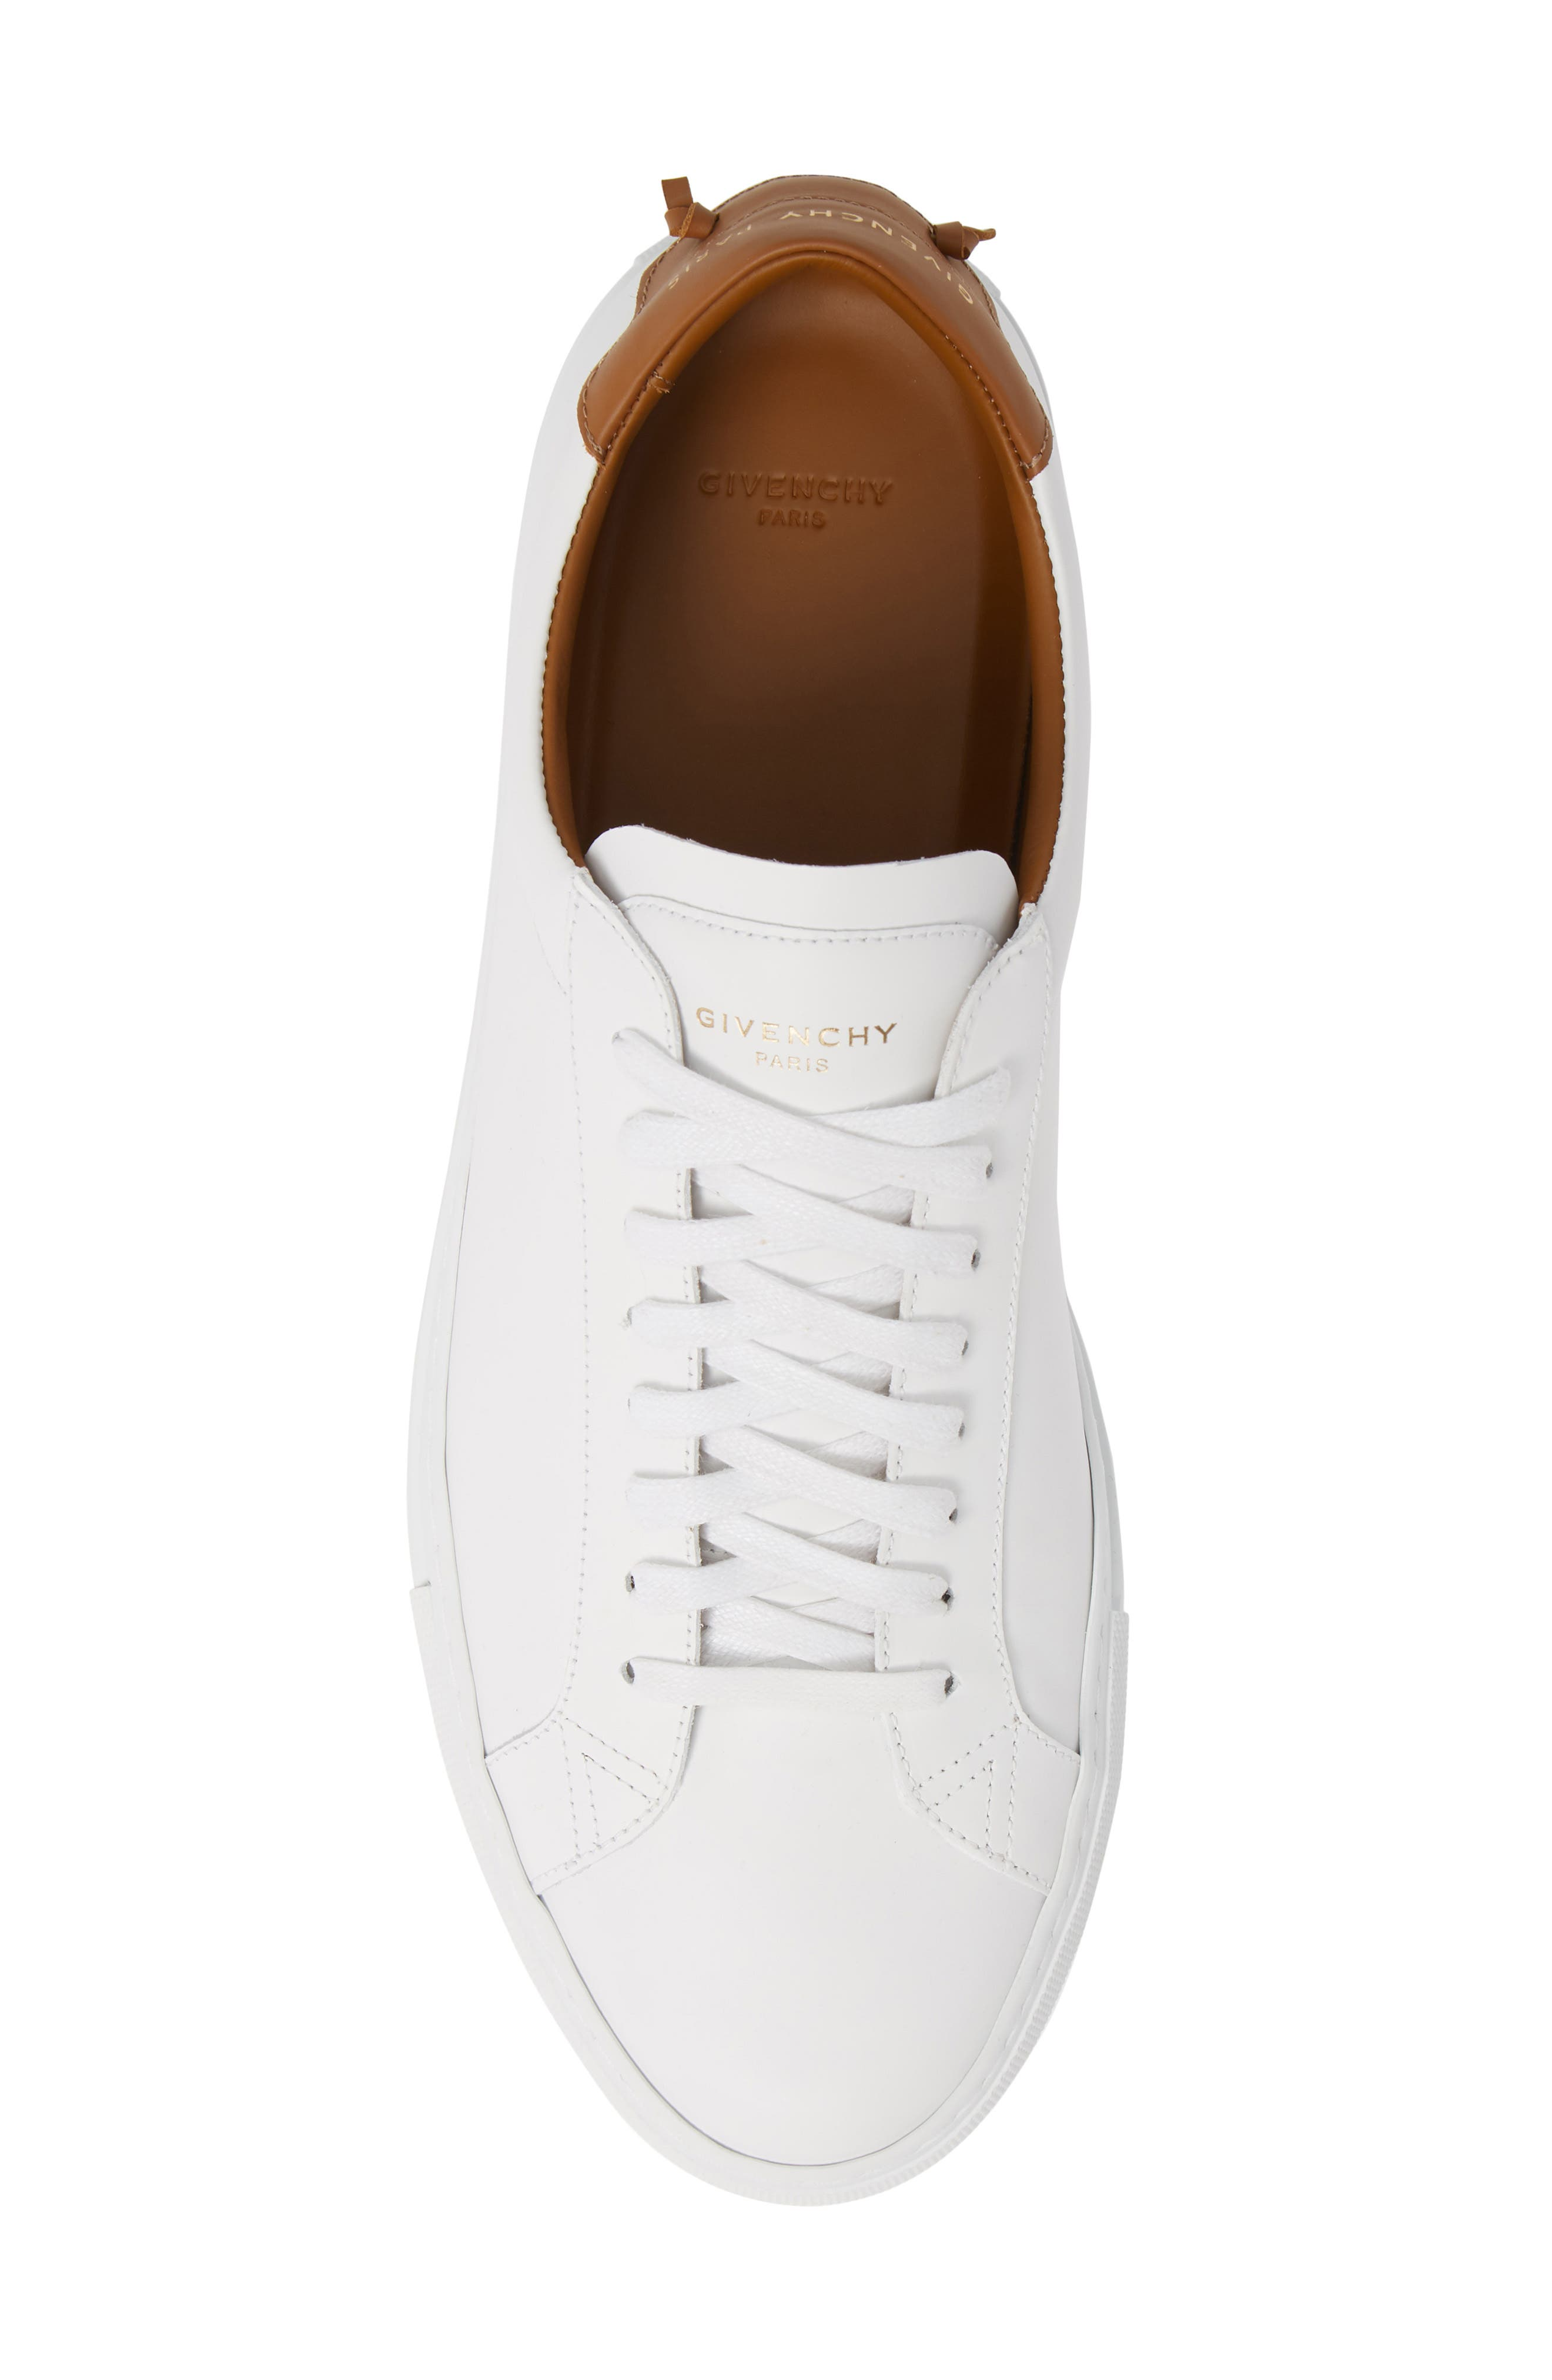 GIVENCHY, Urban Knots Low Sneaker, Alternate thumbnail 5, color, WHITE/ BEIGE